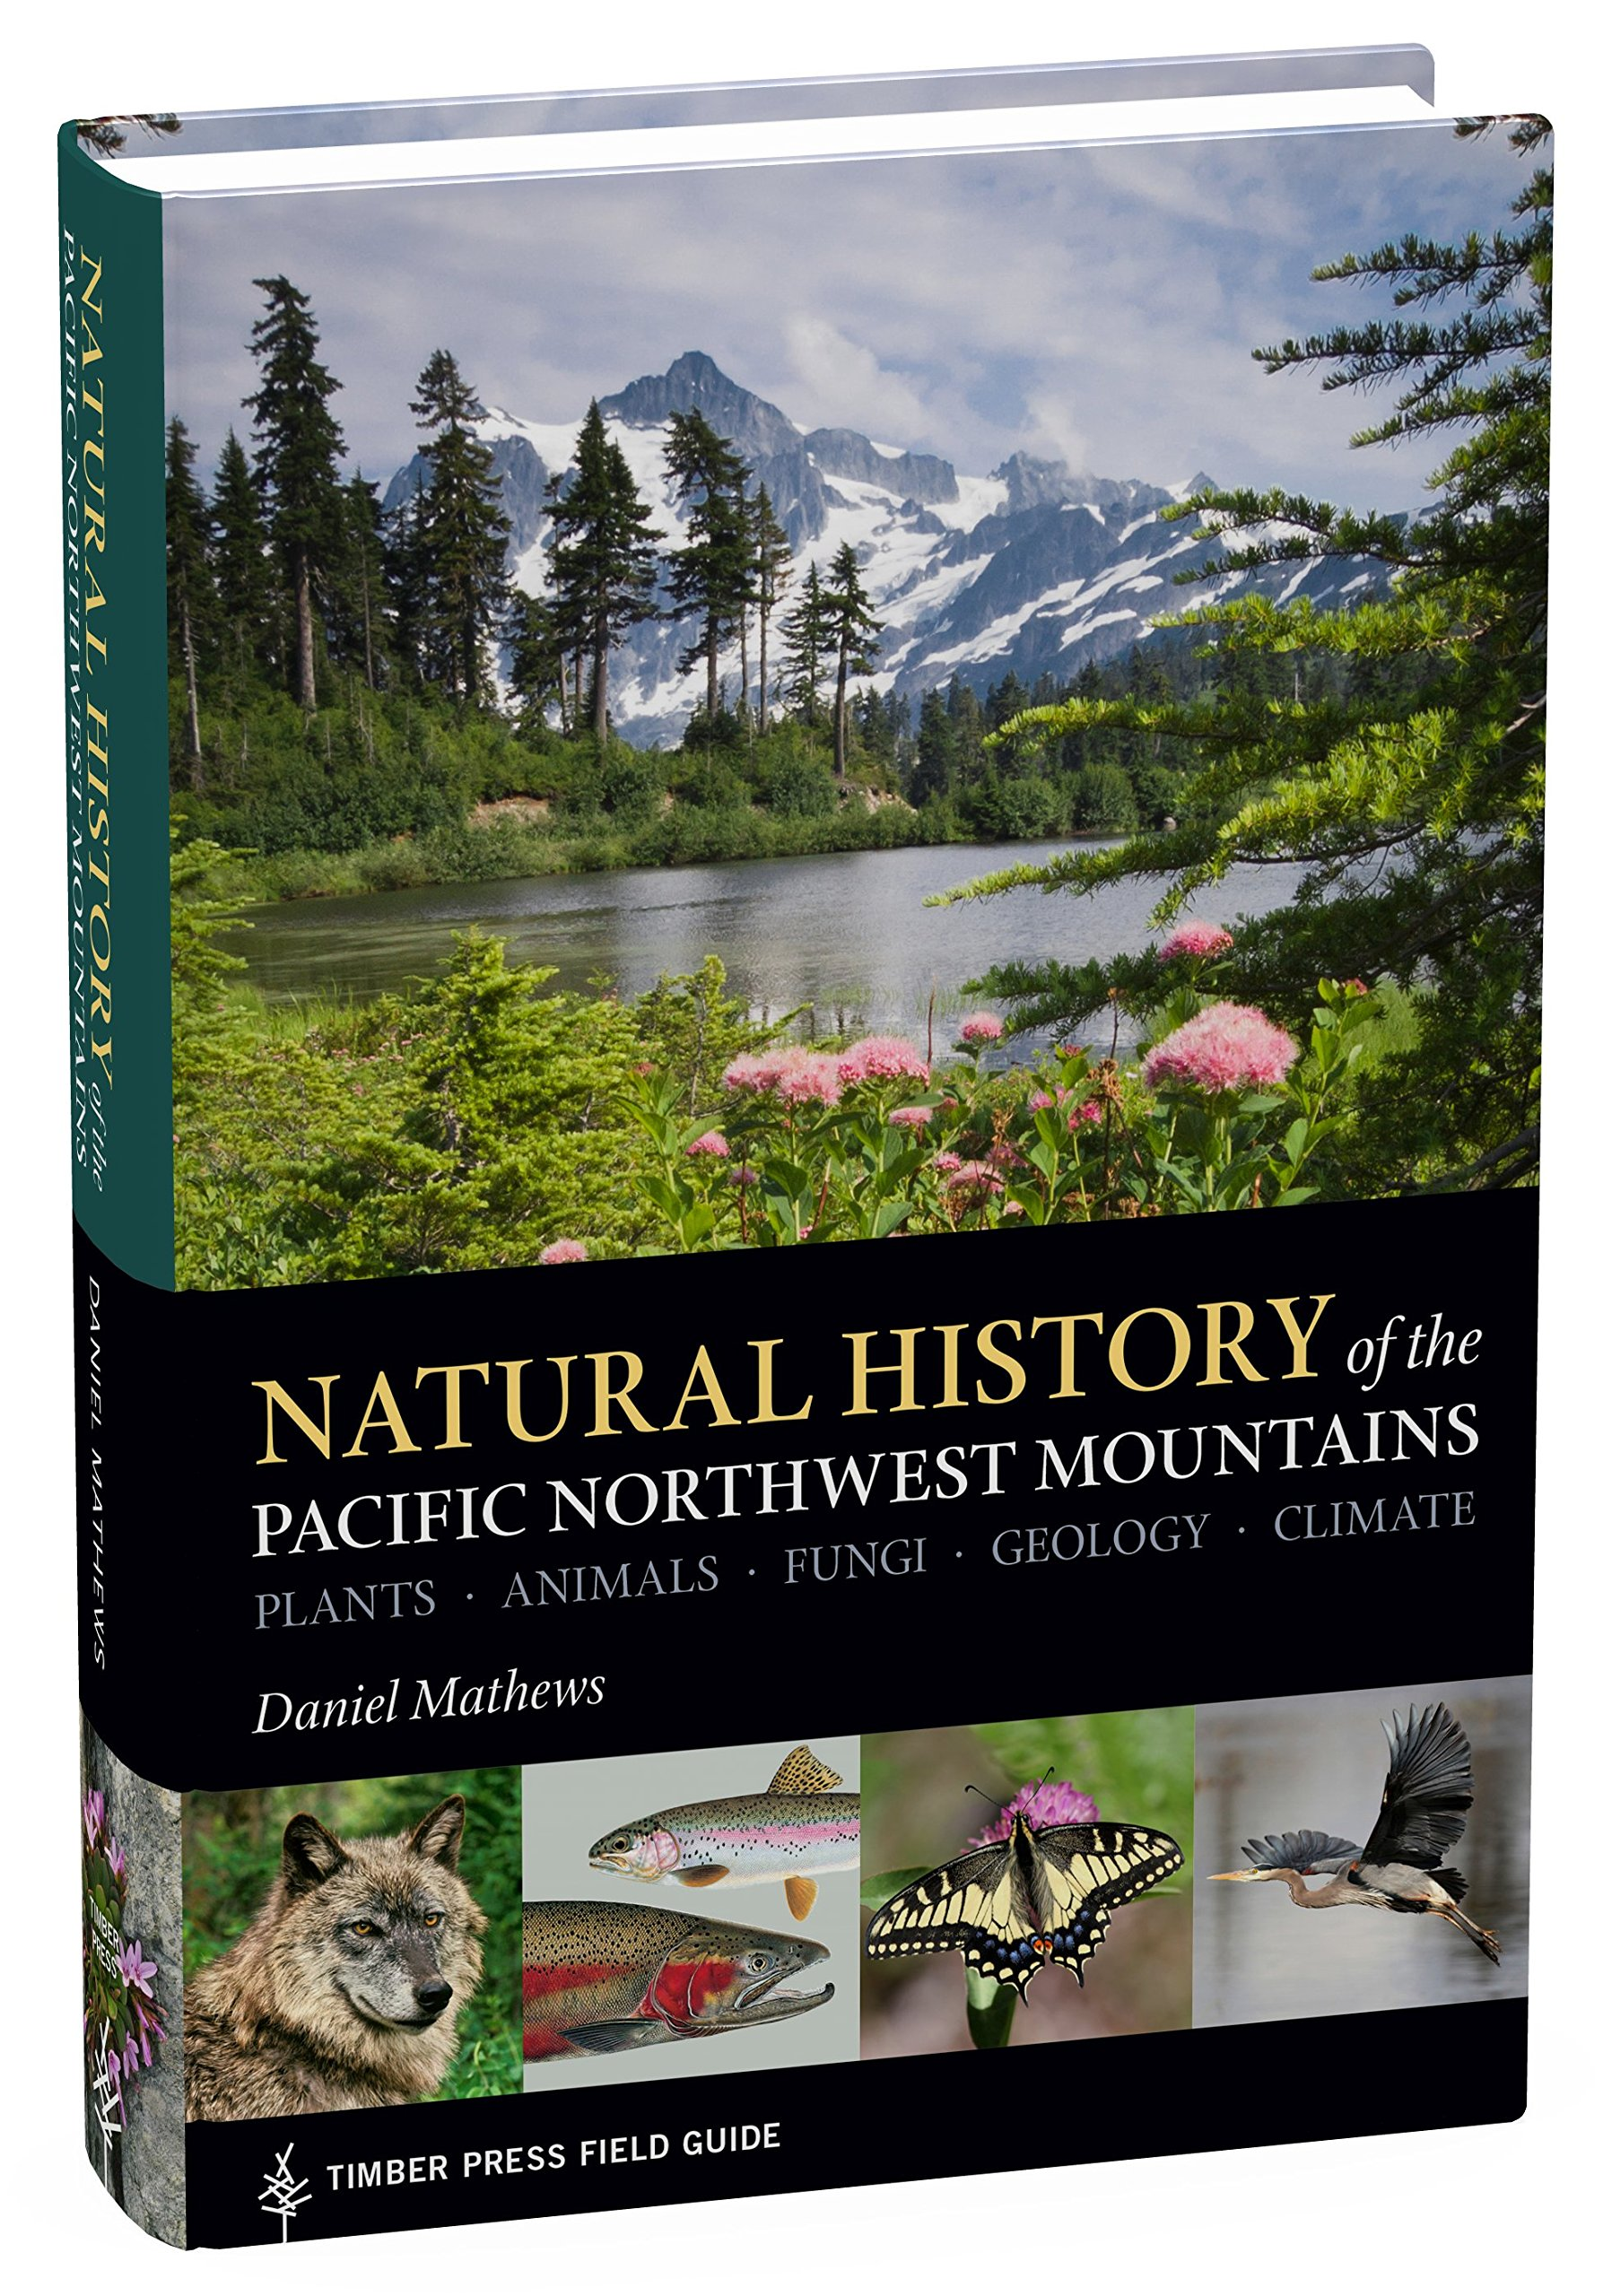 Natural History of the Pacific Northwest Mountains (A Timber Press Field Guide) PDF ePub fb2 book